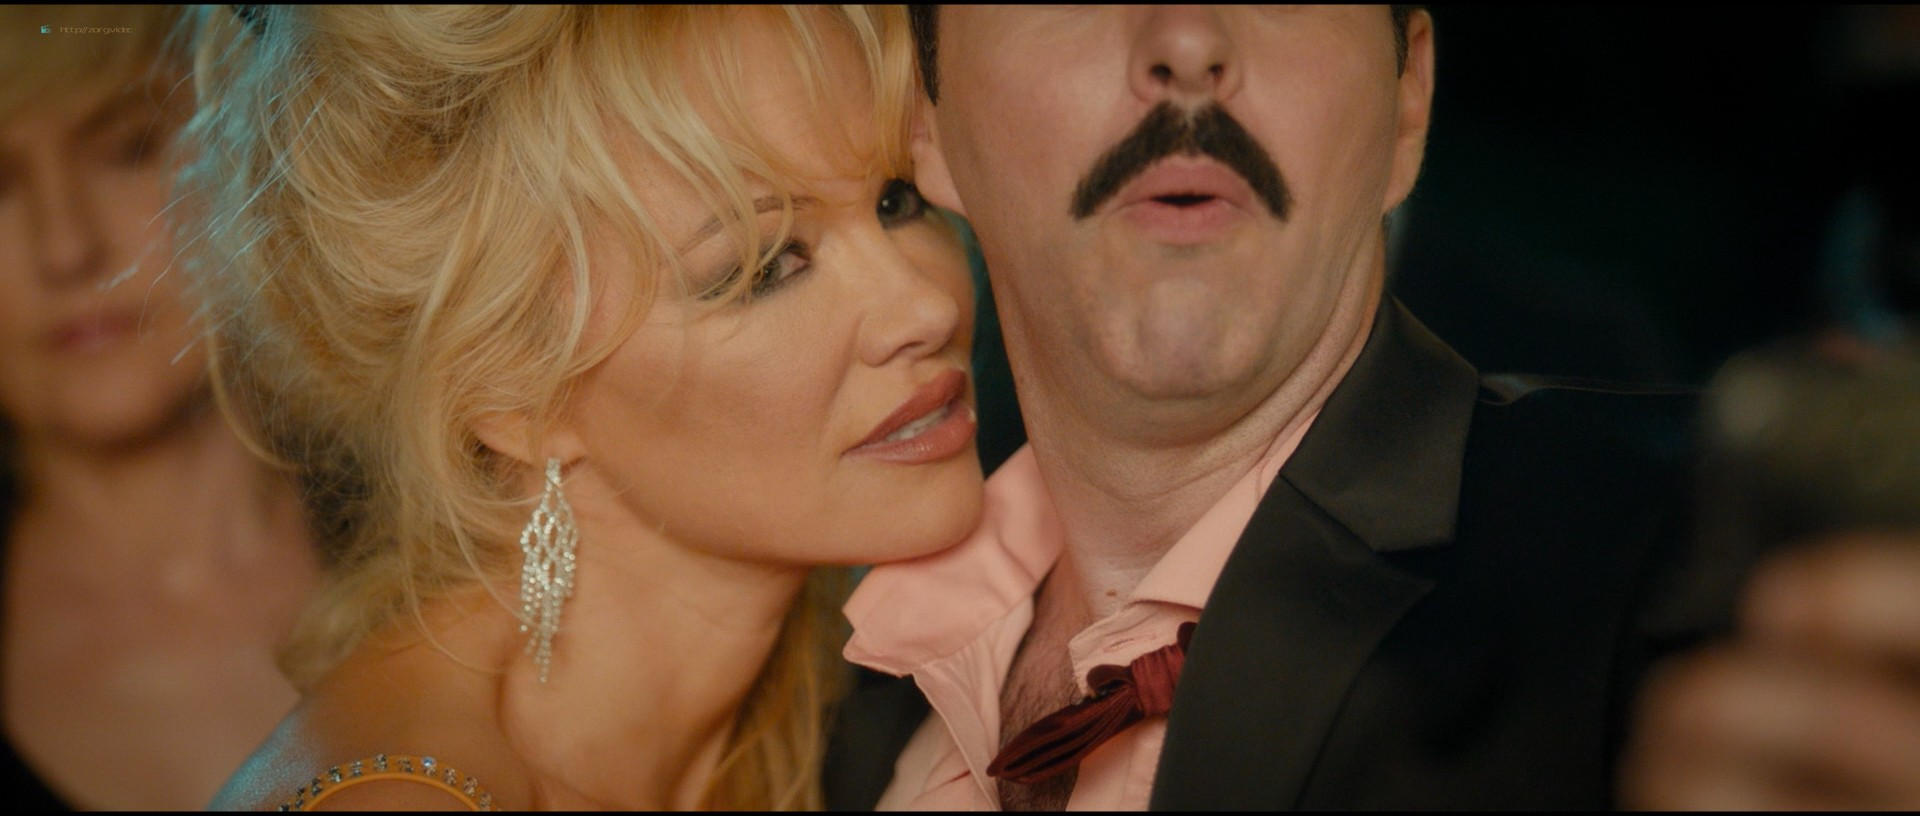 Pamela Anderson sexy Élodie Fontan and others hot - Nicky Larson et le parfum de Cupidon (2018) 1080p BluRay (13)